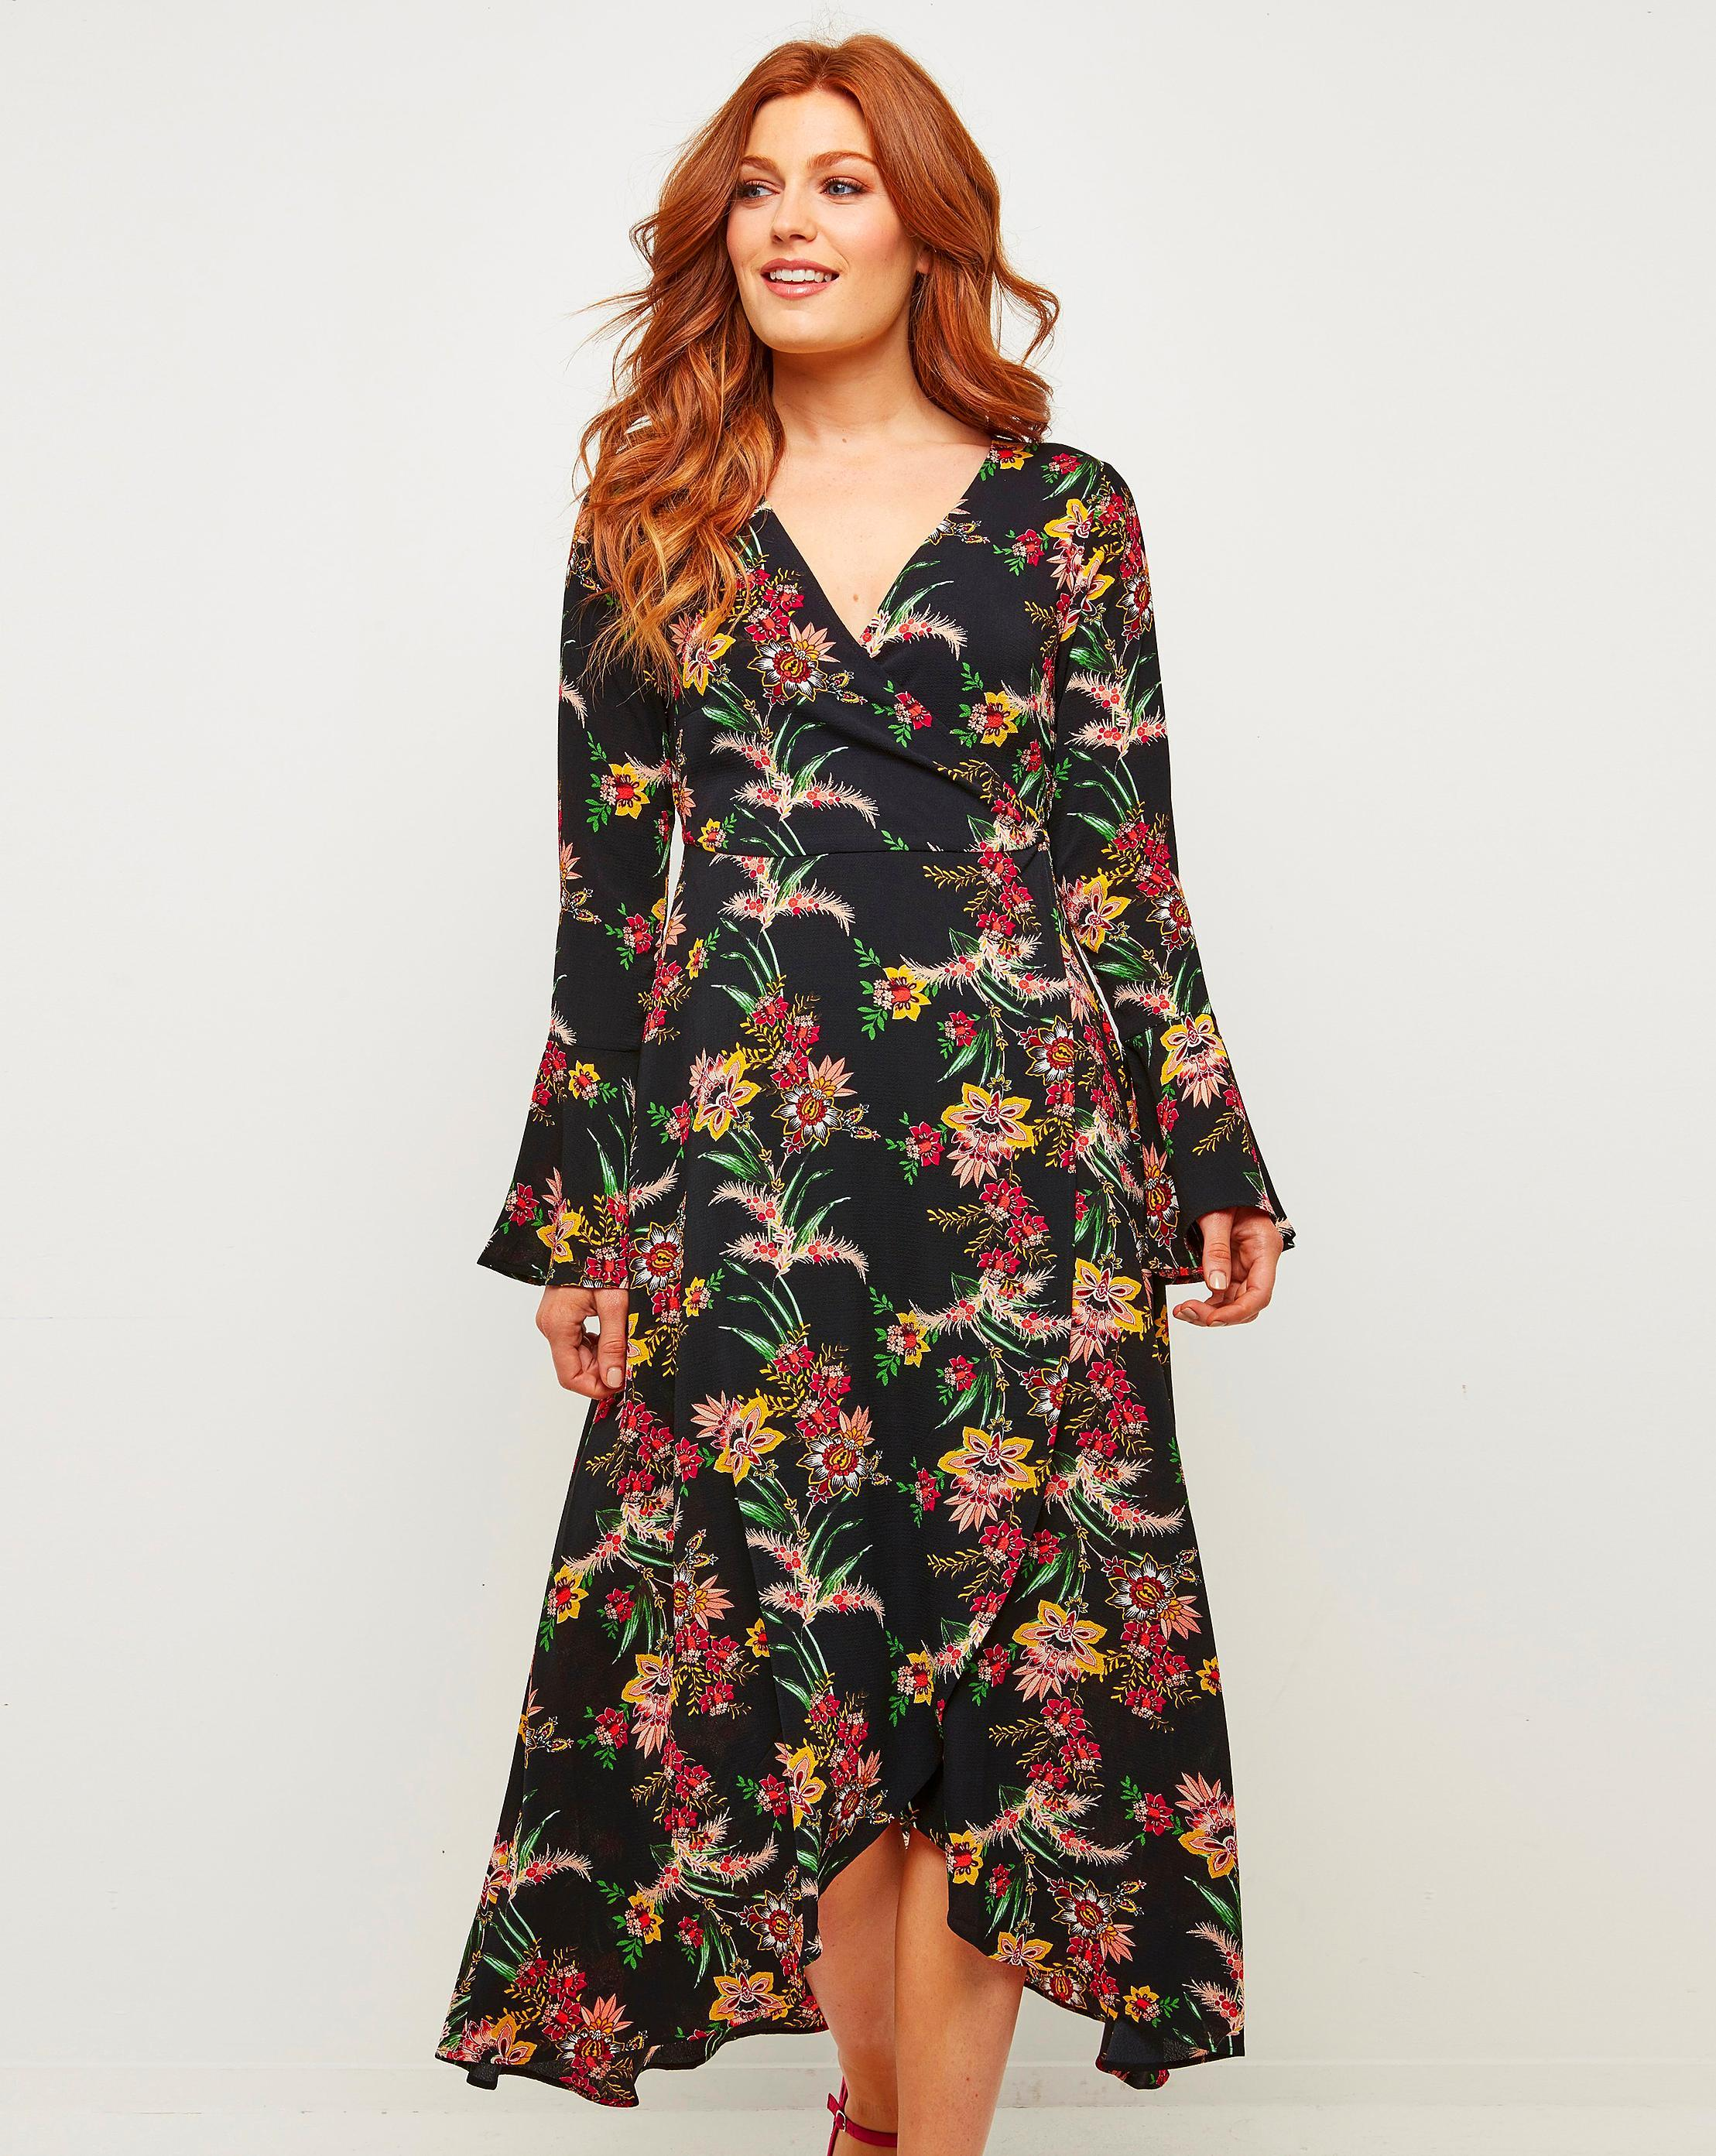 0cf5bec9323 Lyst - Simply Be Joe Browns Something About It Maxi Dress in Black